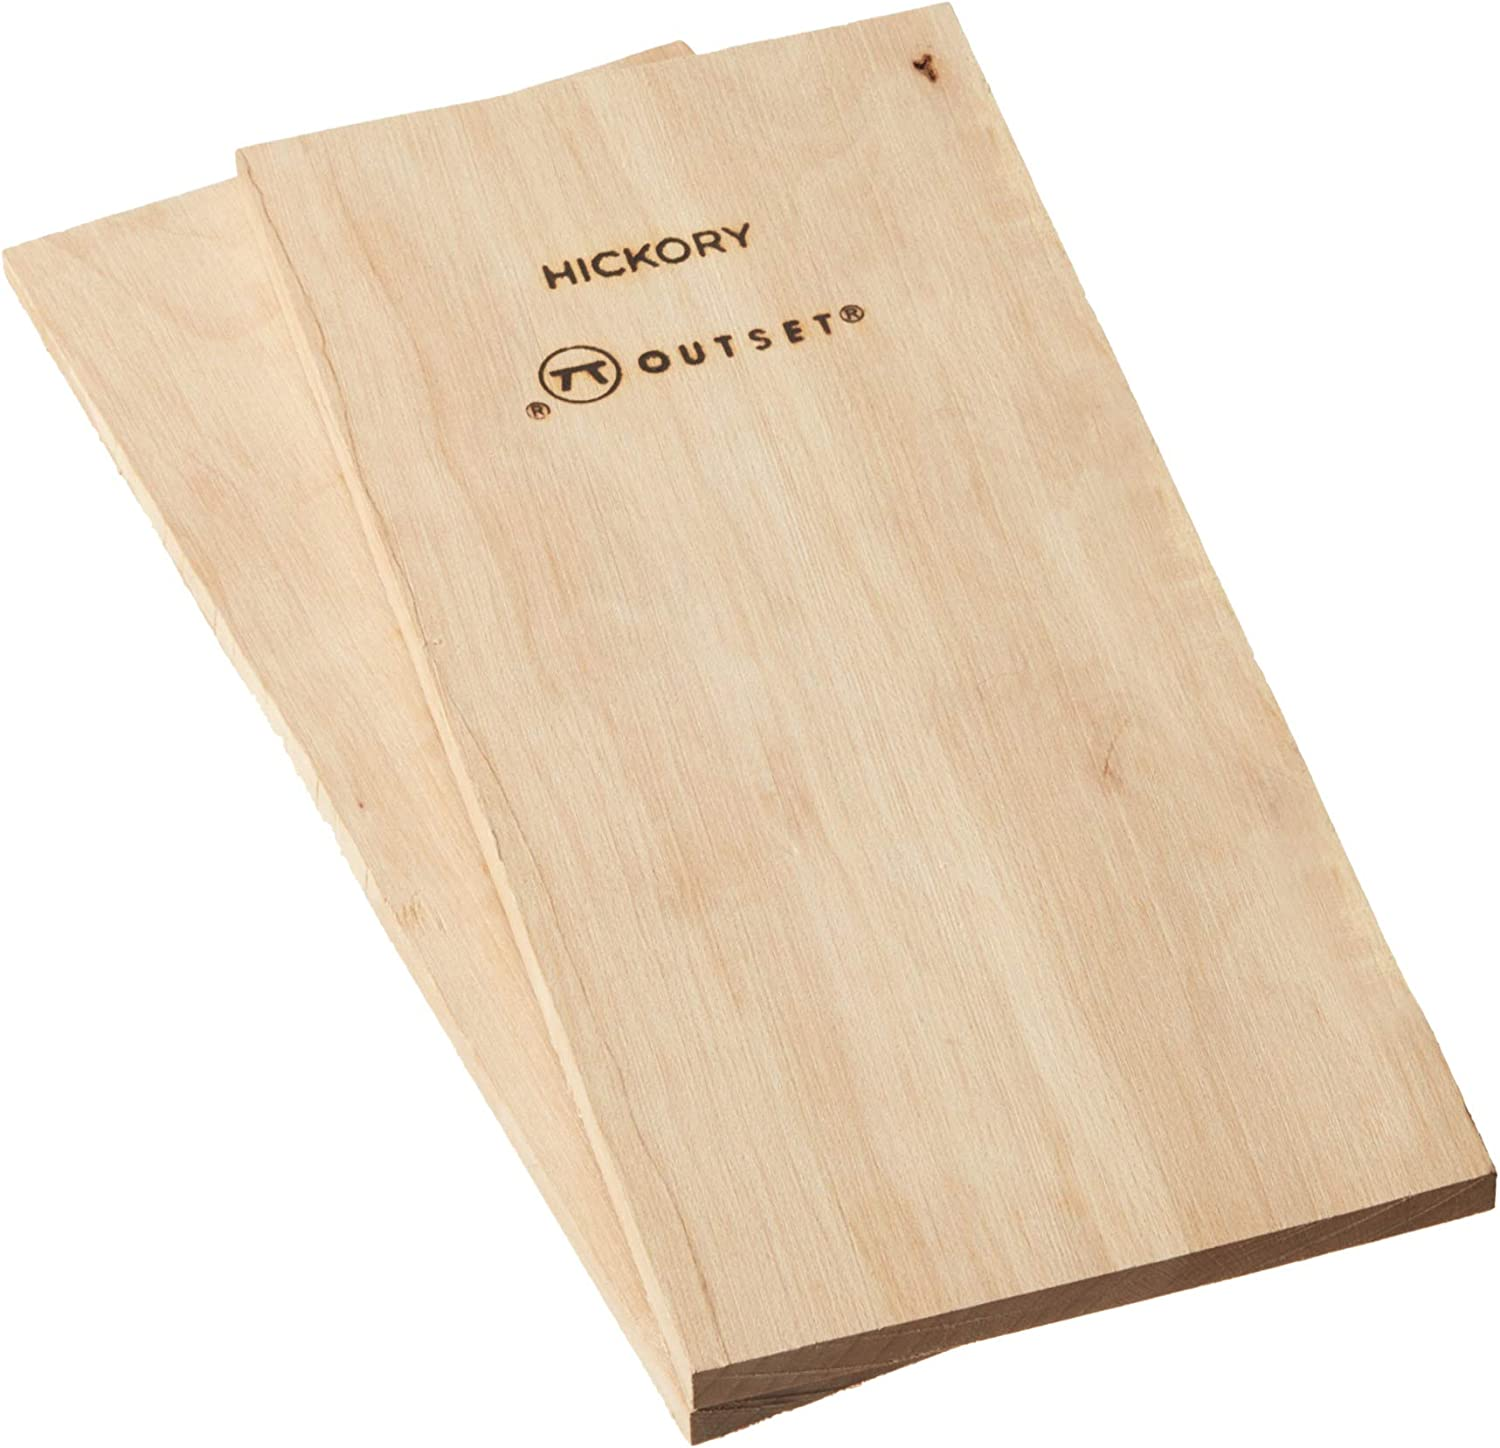 Outset F723 Hickory Grilling Planks, Brown